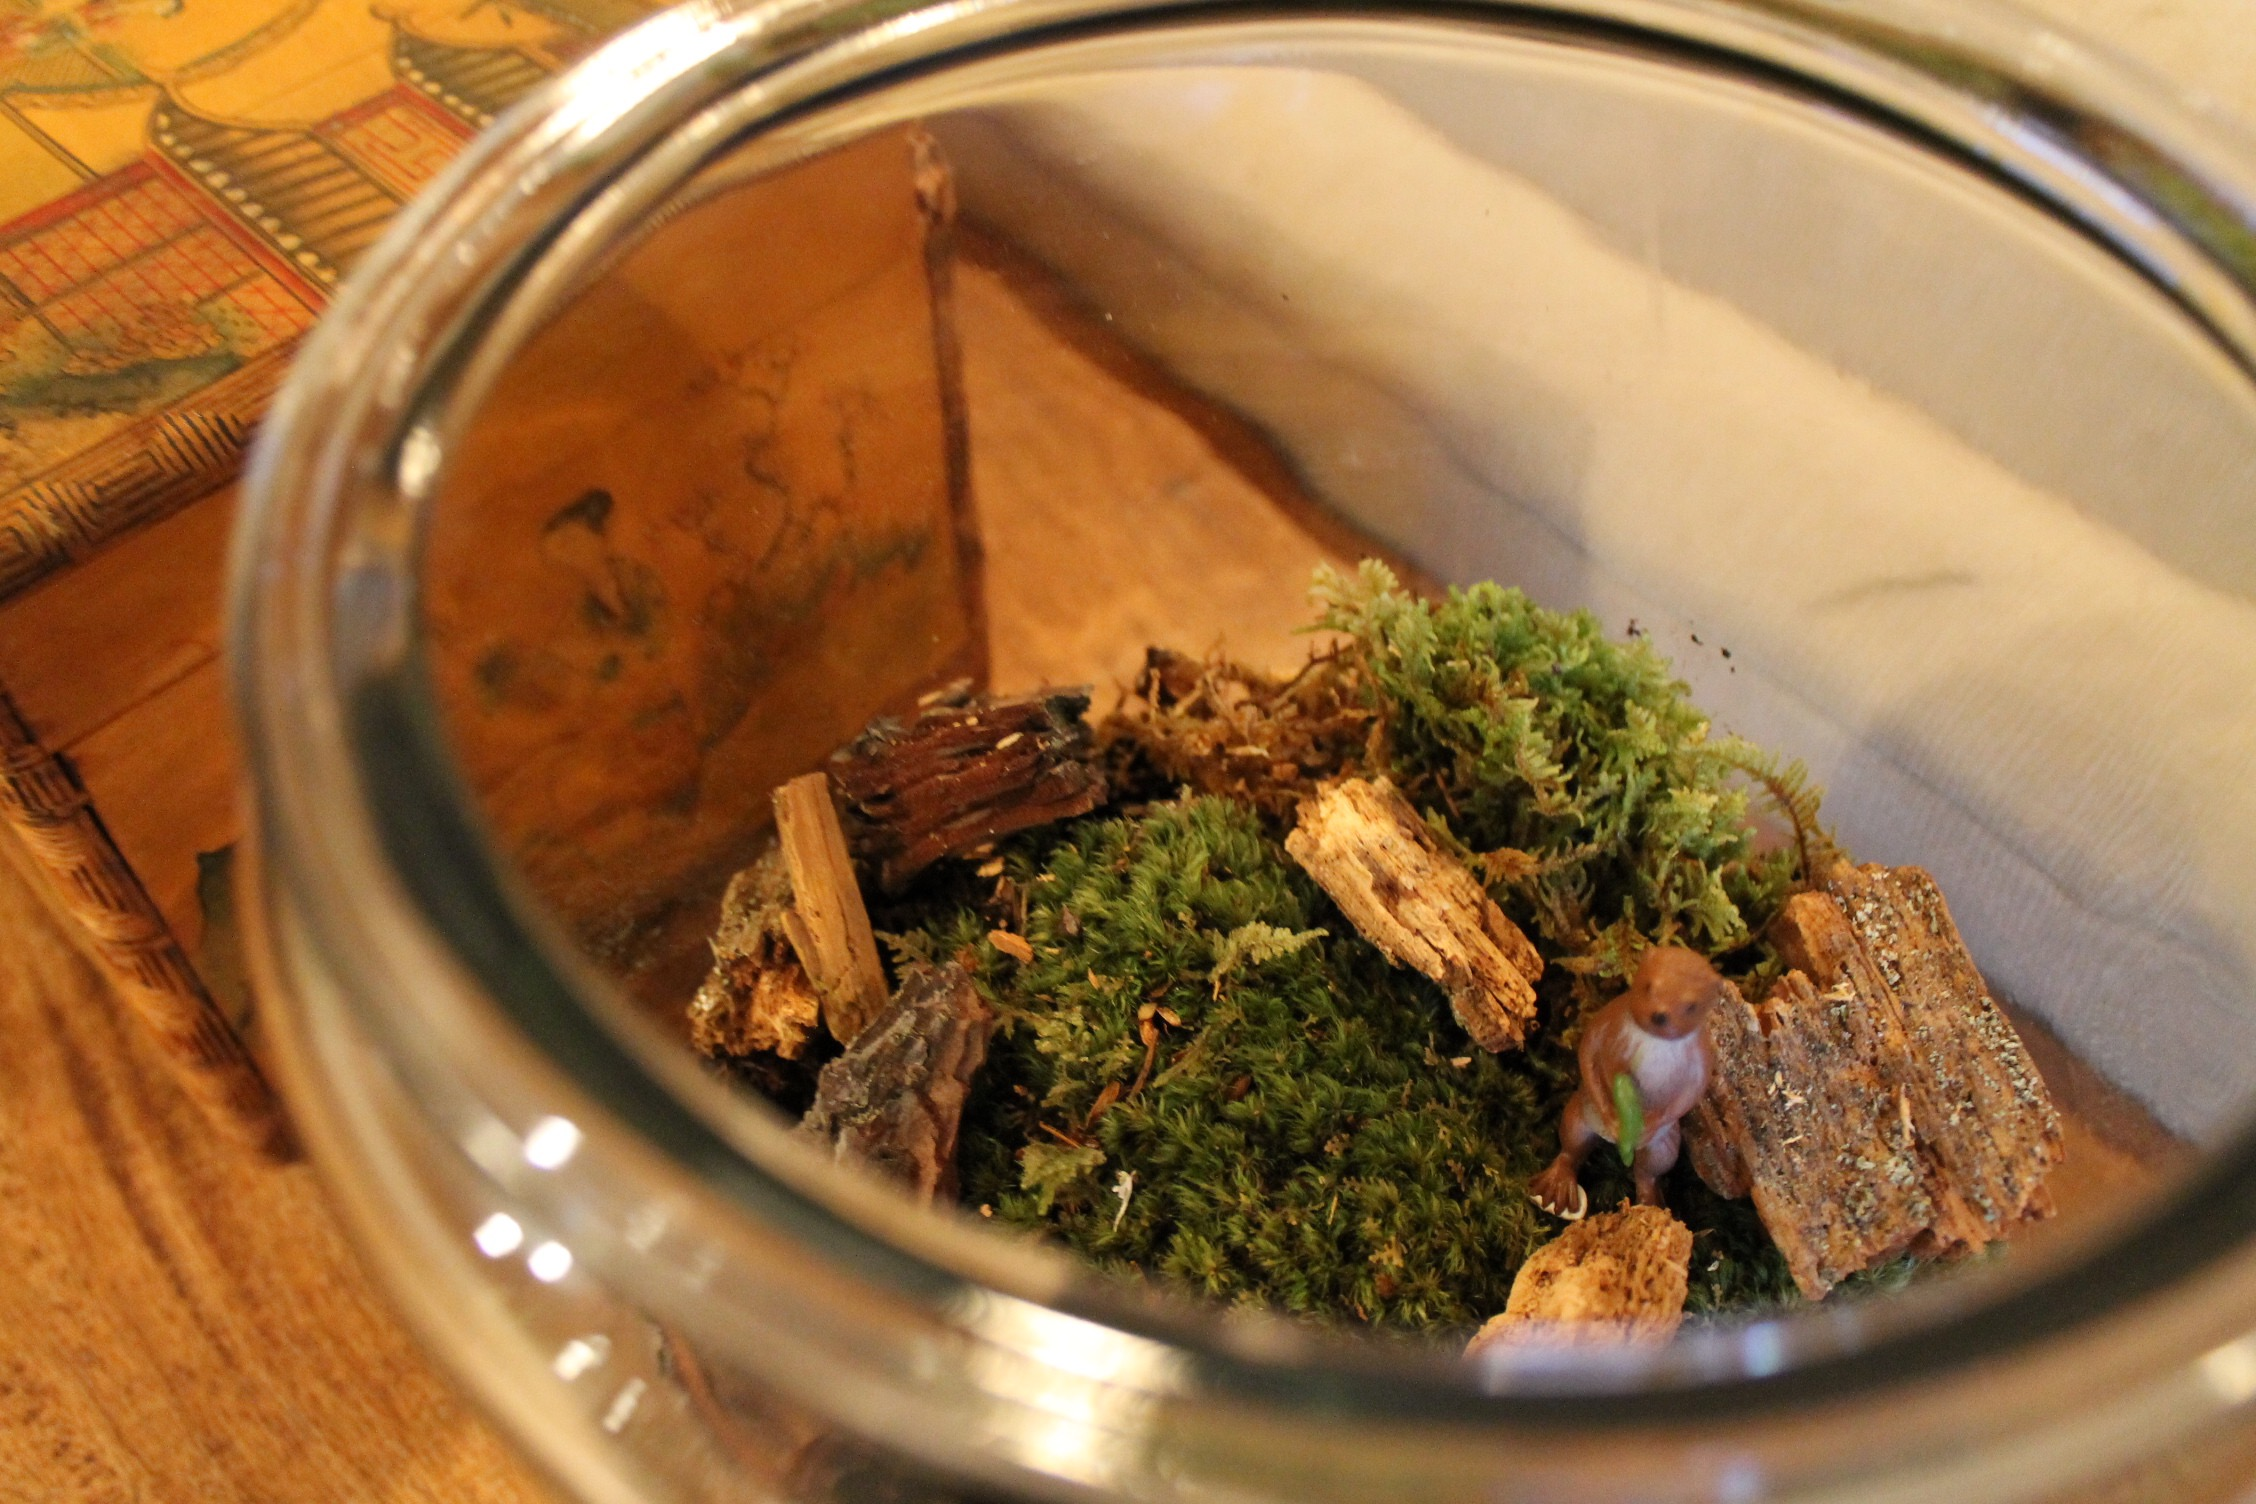 A peek inside our new terrarium!